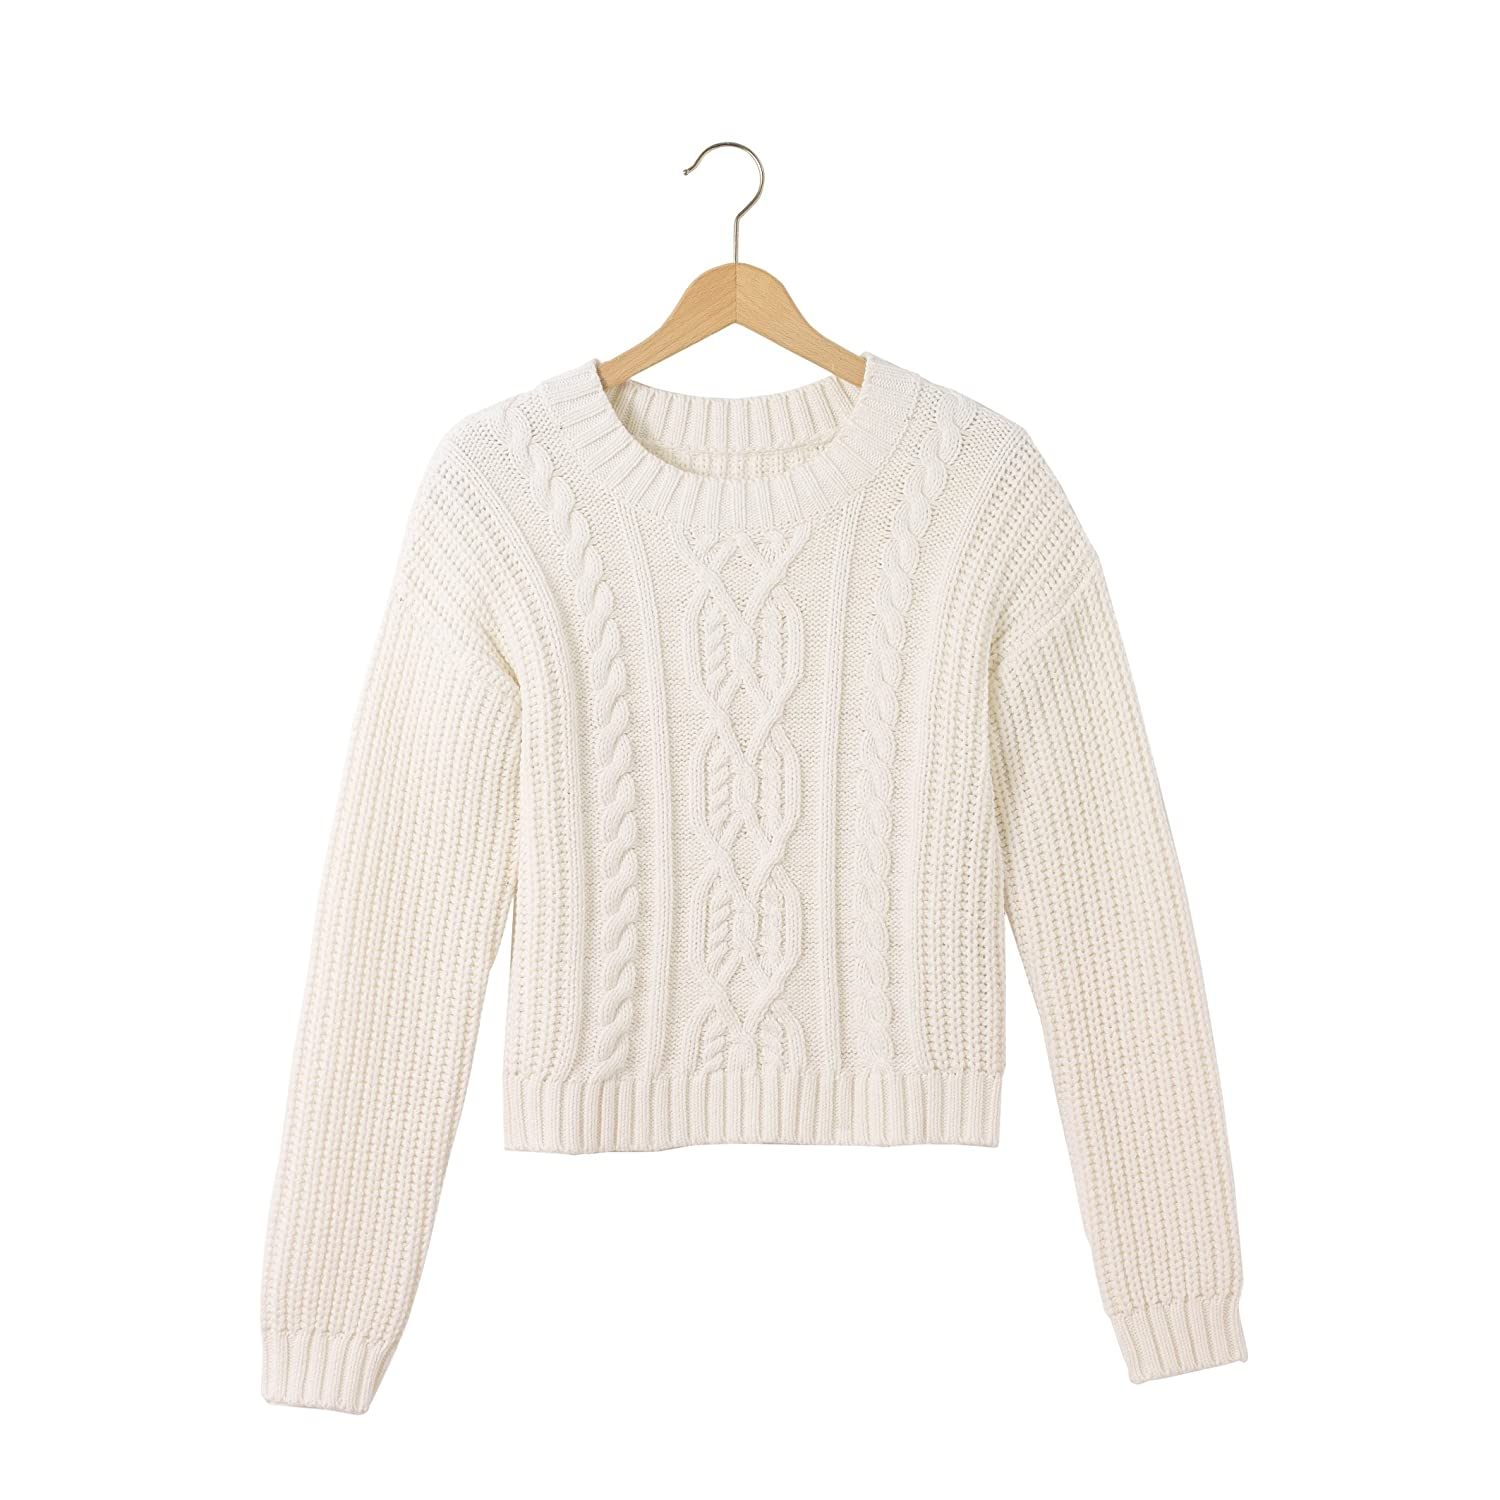 La Redoute Uniross Cable Knit Jumper//Sweater 10-16 Years